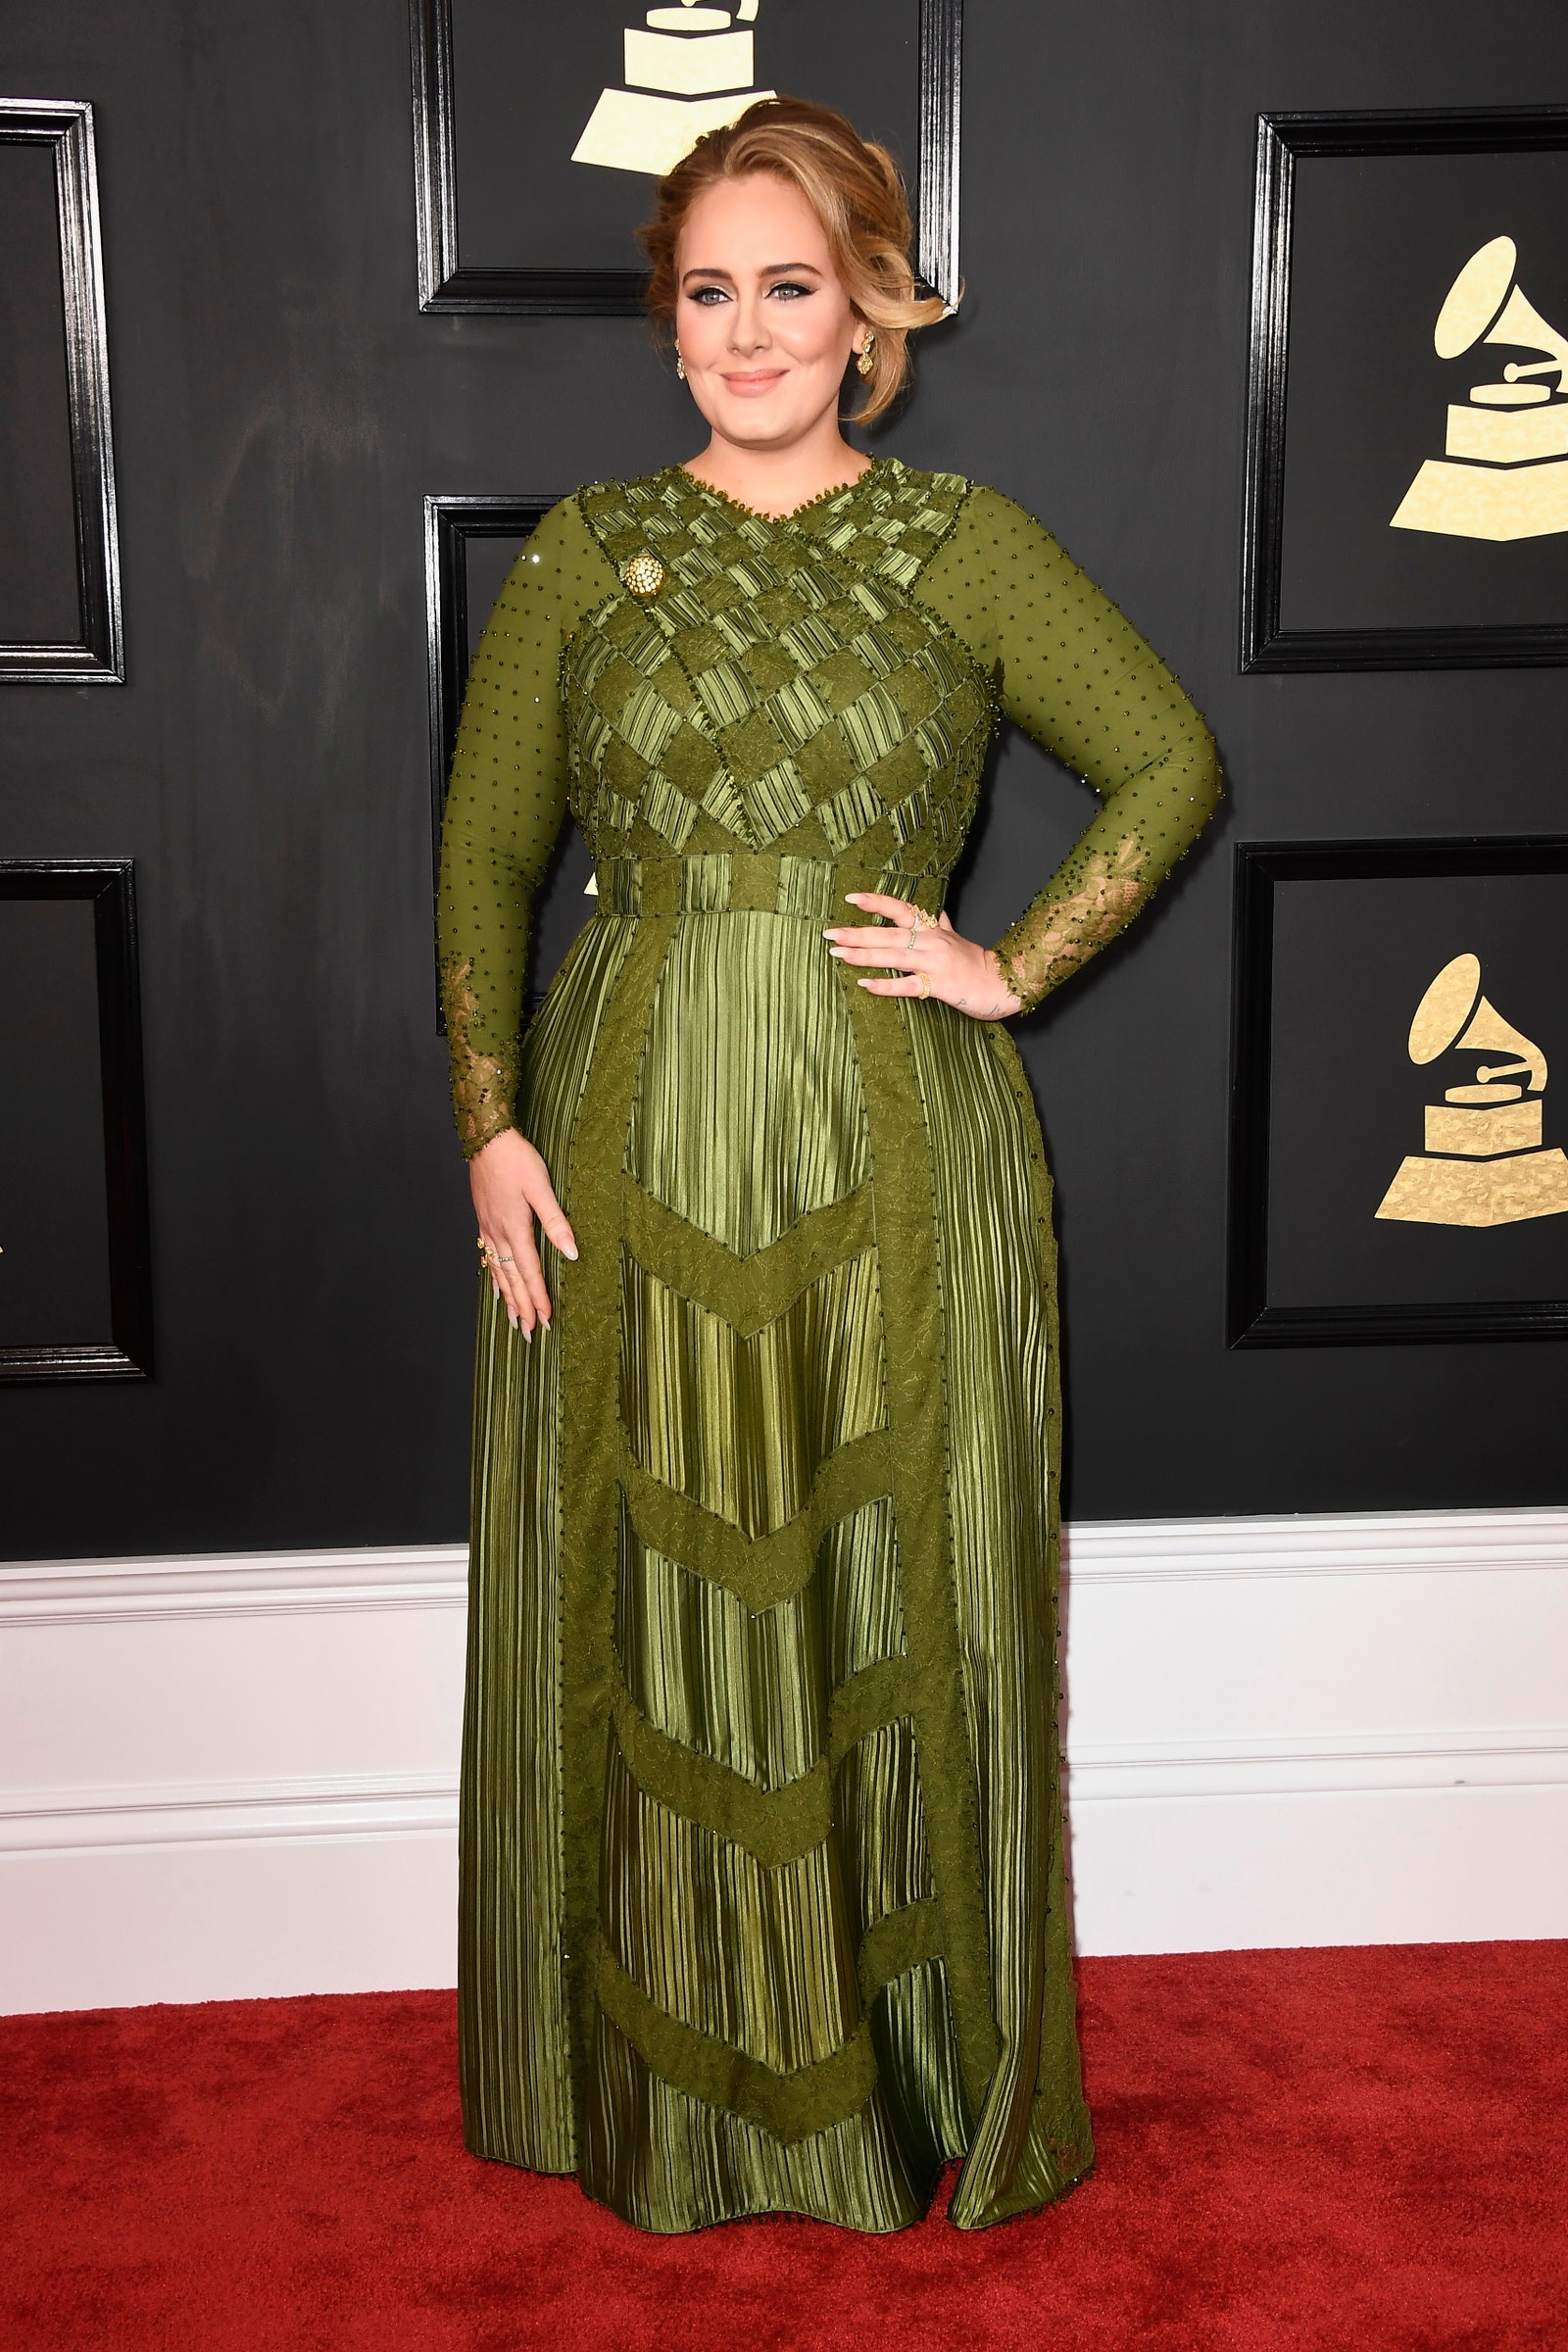 Adele at Grammy Awards 2017